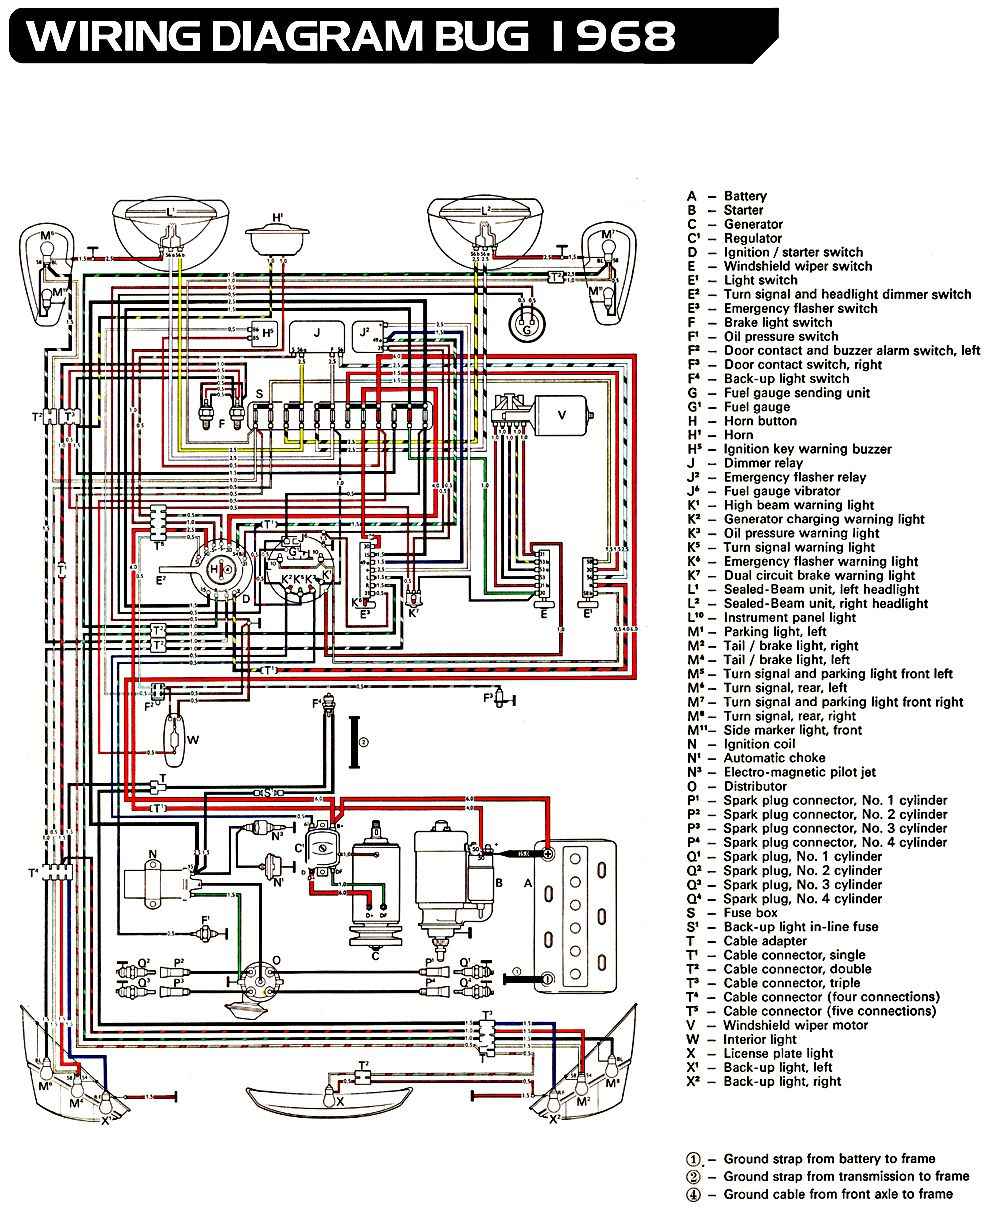 medium resolution of ignition switch parts wiring for 1973 vw type 3 wiring diagramvw bug ignition wiring diagram 73